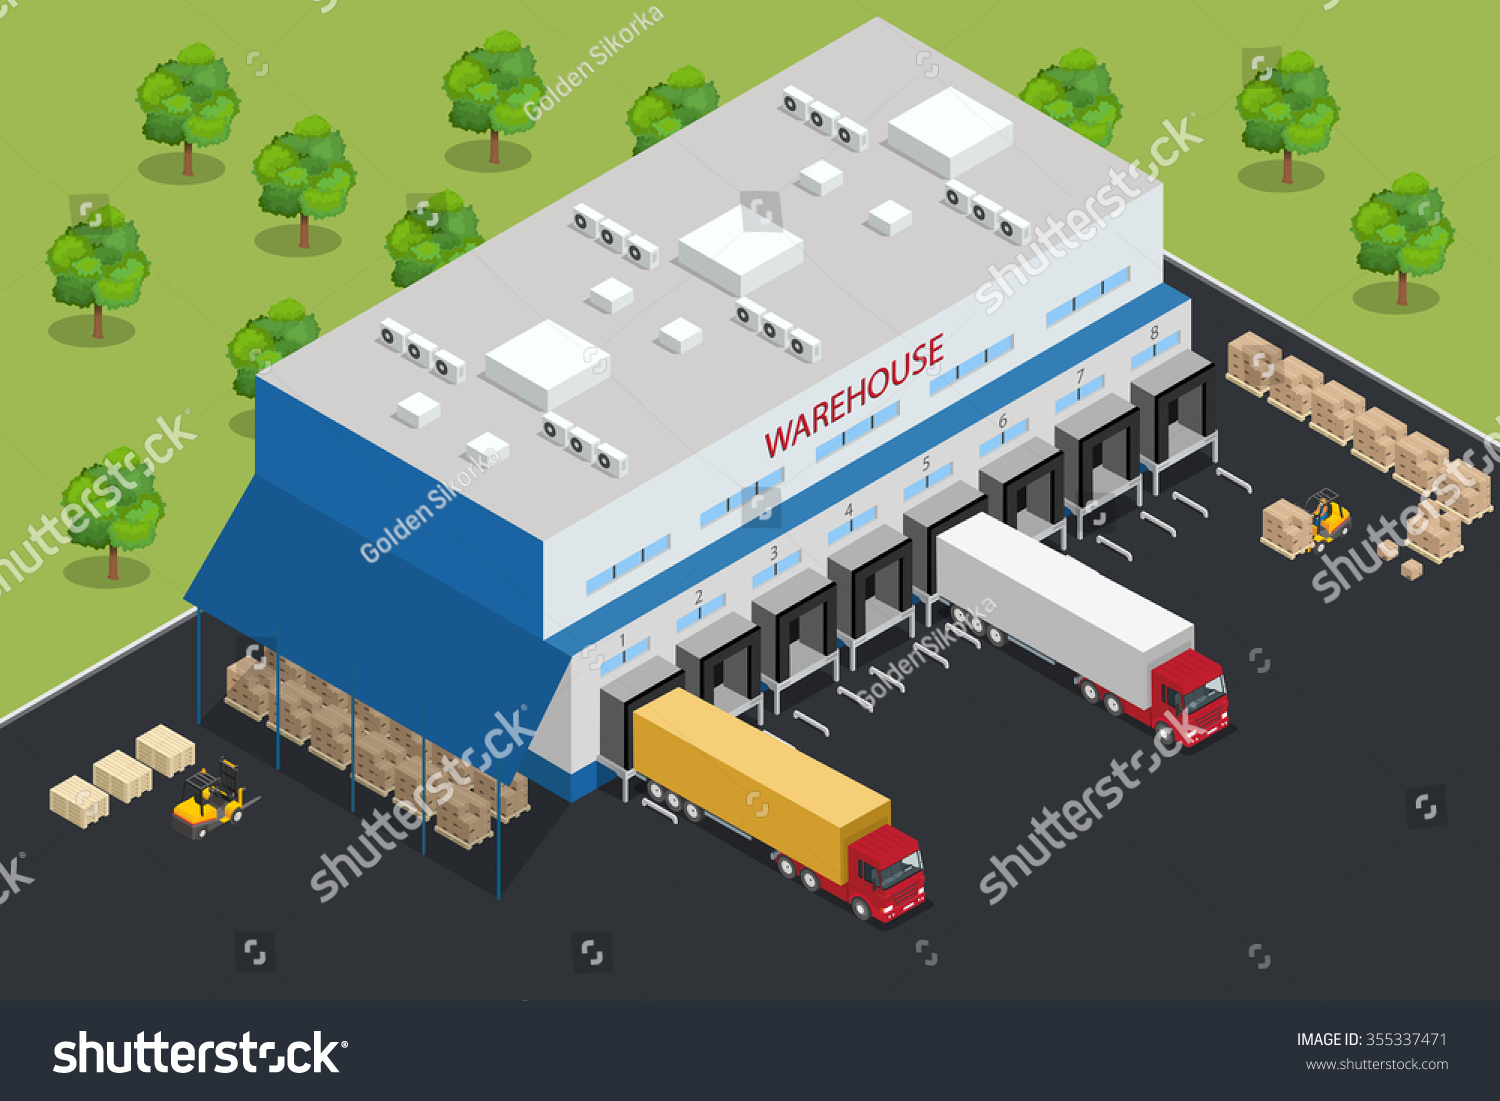 Warehouse building warehouse exterior warehouse web for Warehouse layout template